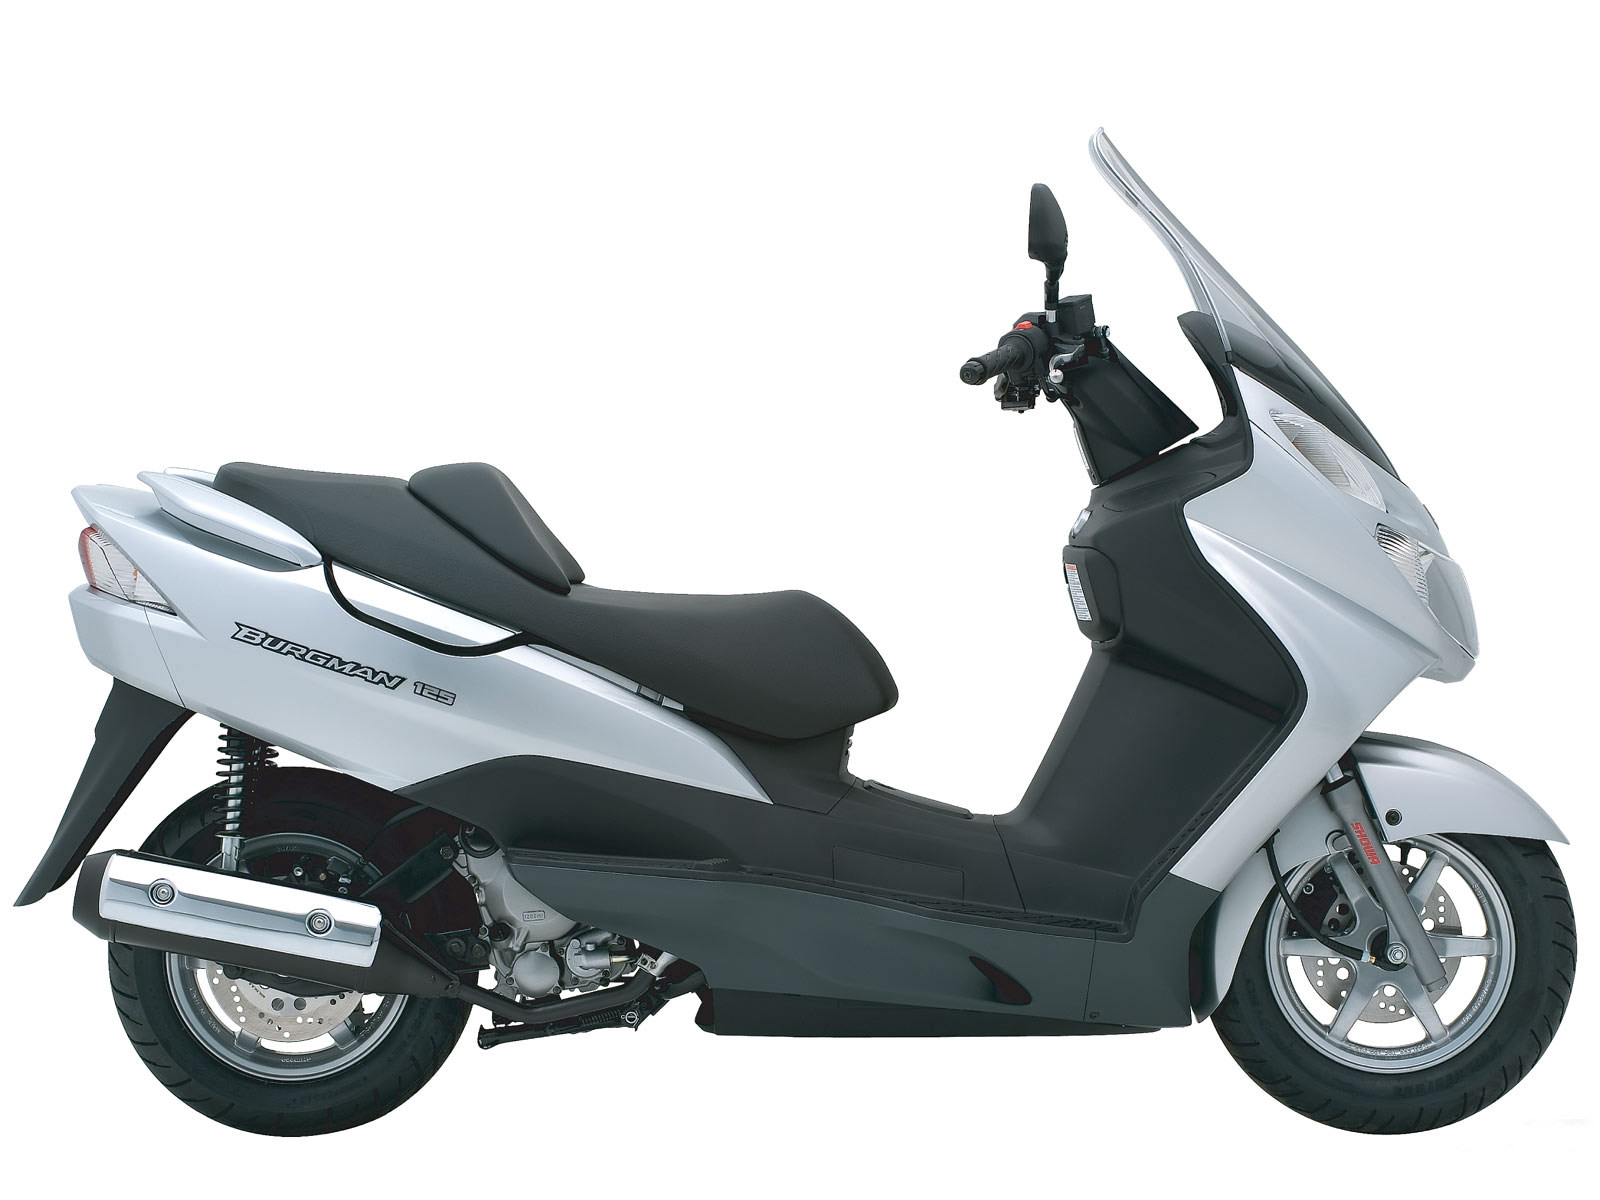 2005 suzuki burgman 125 scooter pictures. Black Bedroom Furniture Sets. Home Design Ideas